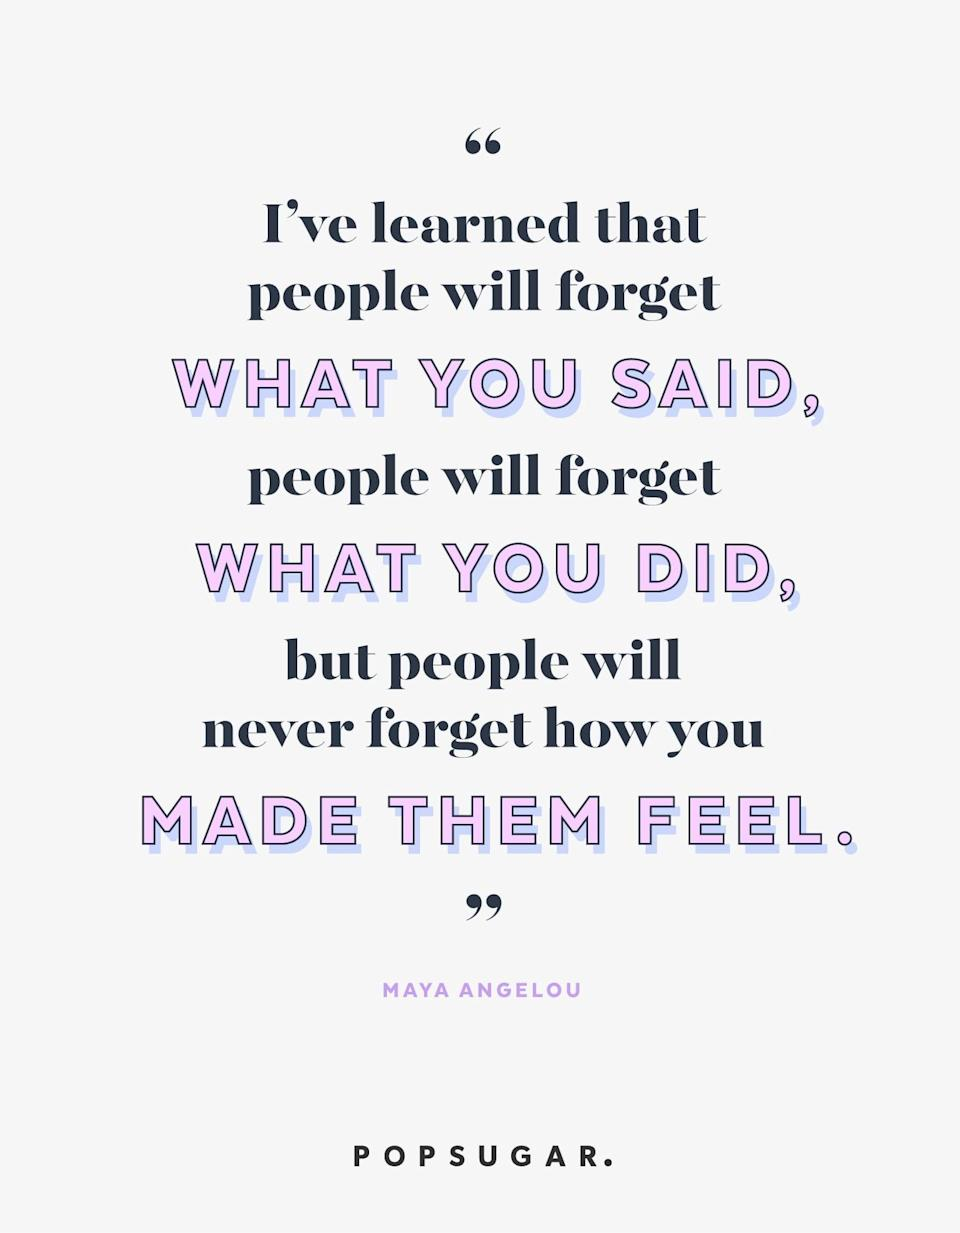 """<p><b>Quote:</b></p> <p>""""I've learned that people will forget what you said, people will forget what you did, but people will never forget how you made them feel.""""</p> <p><b>Lesson to learn</b>:</p> <p>We may not remember the details, but we'll always remember the impact a person had on us.</p>"""